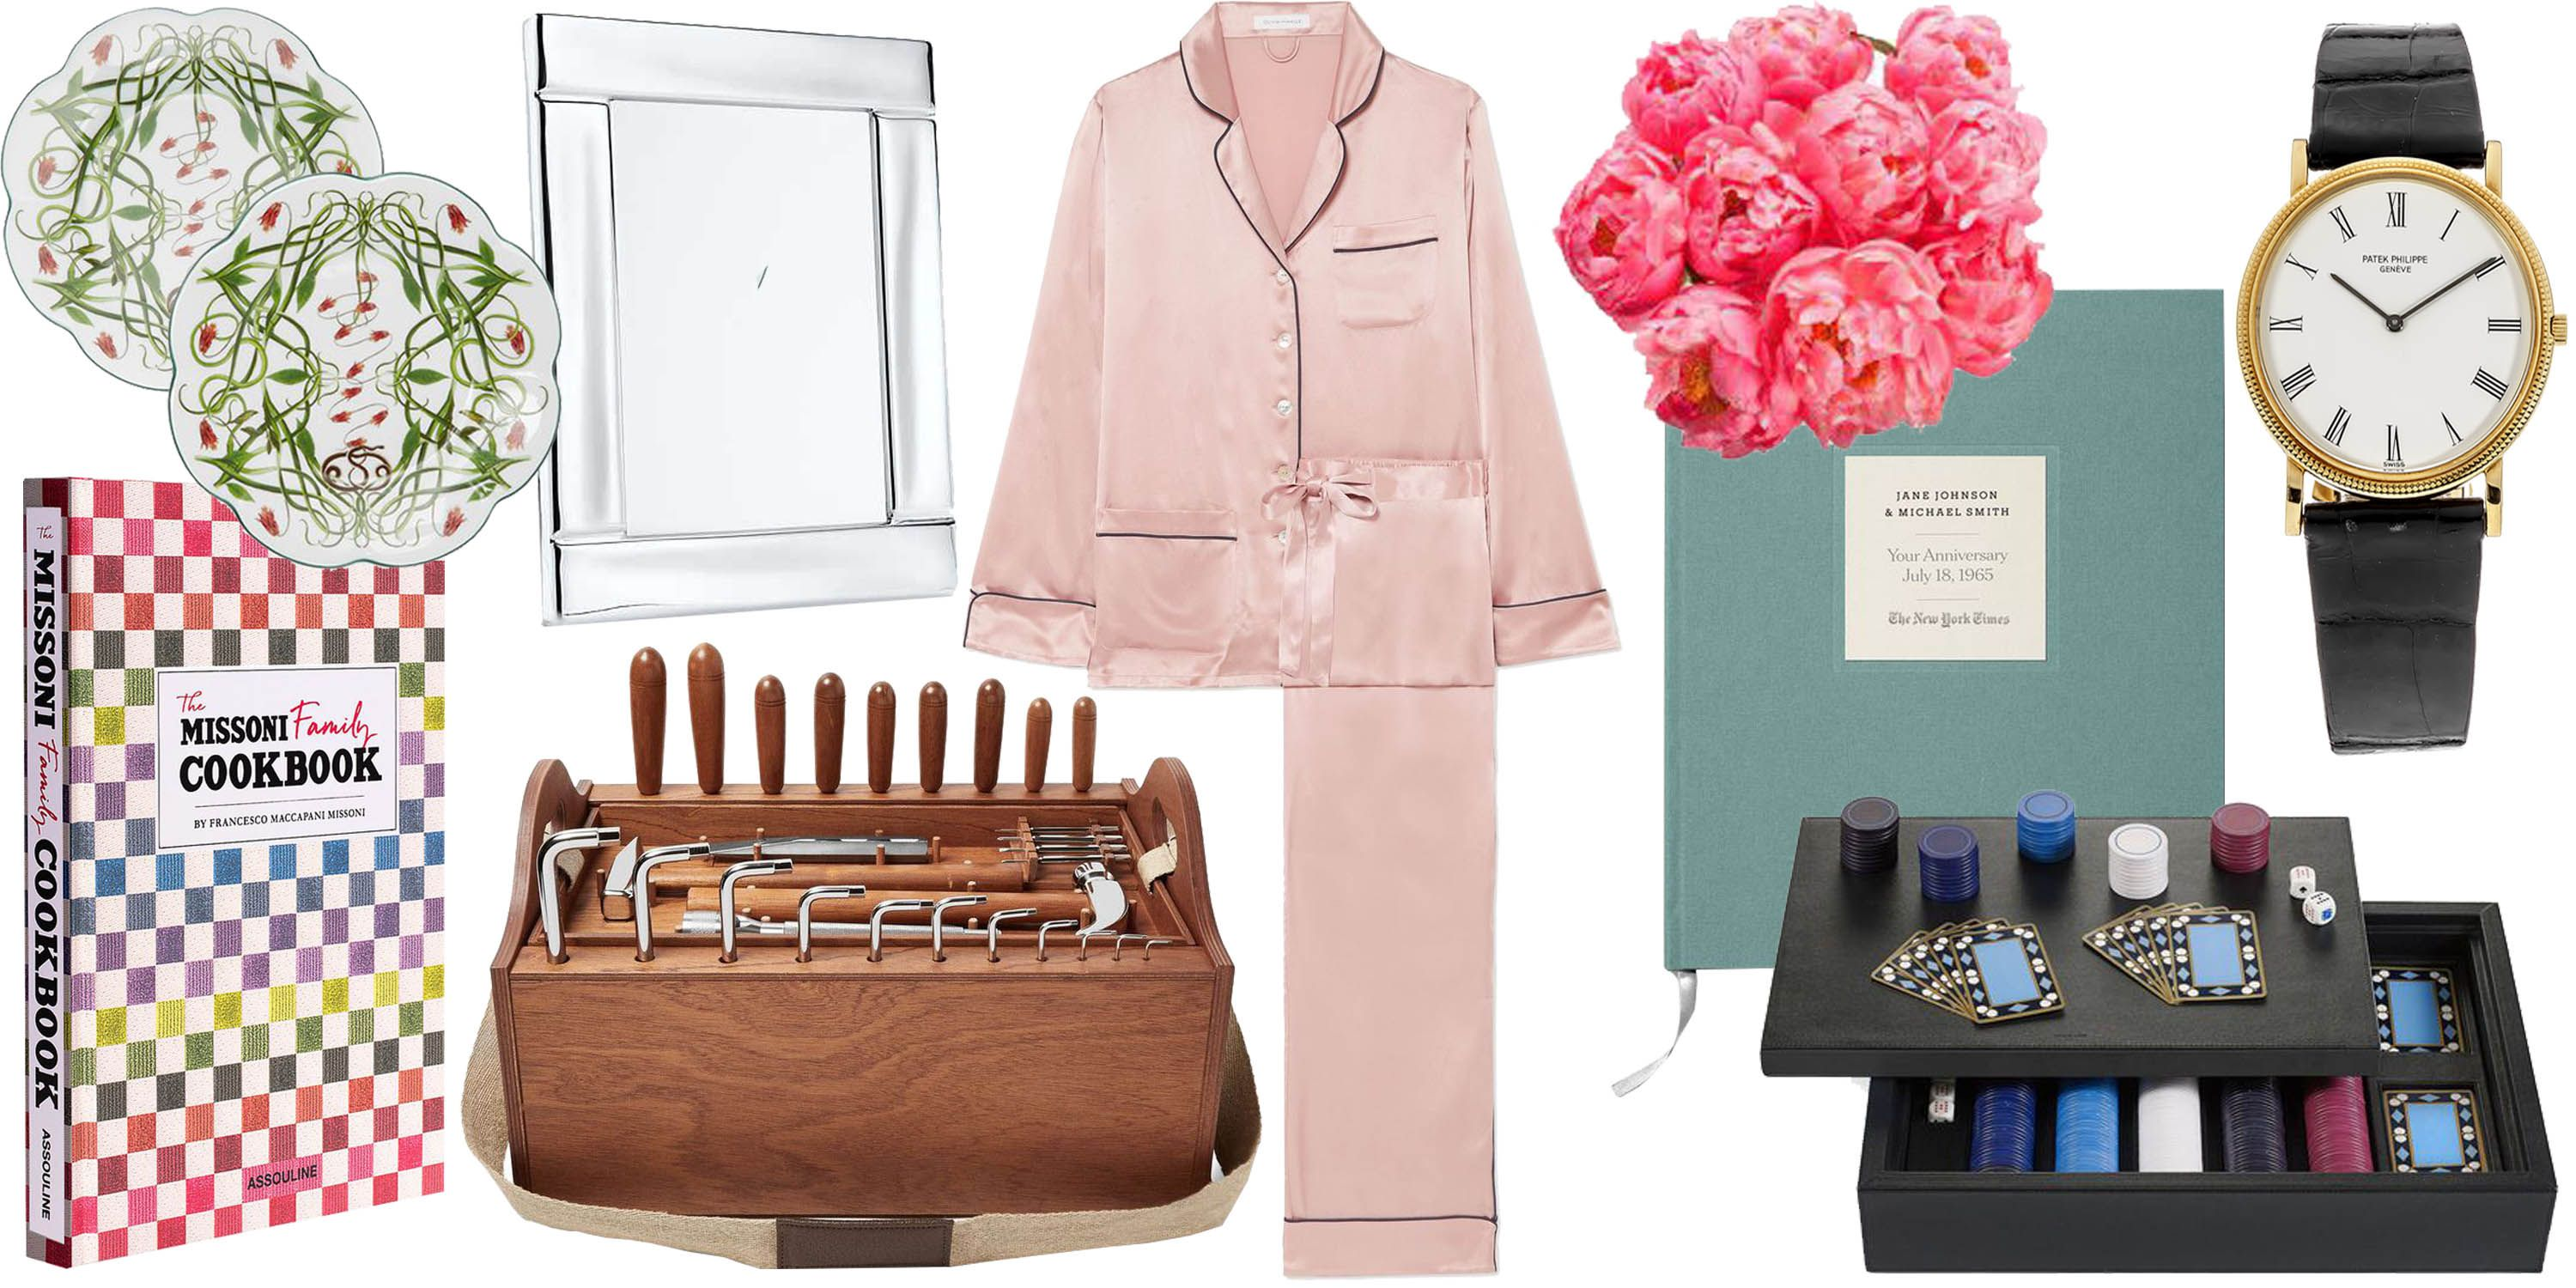 30 Chic Thank You Gift Ideas for Your Parents & Your In-Laws